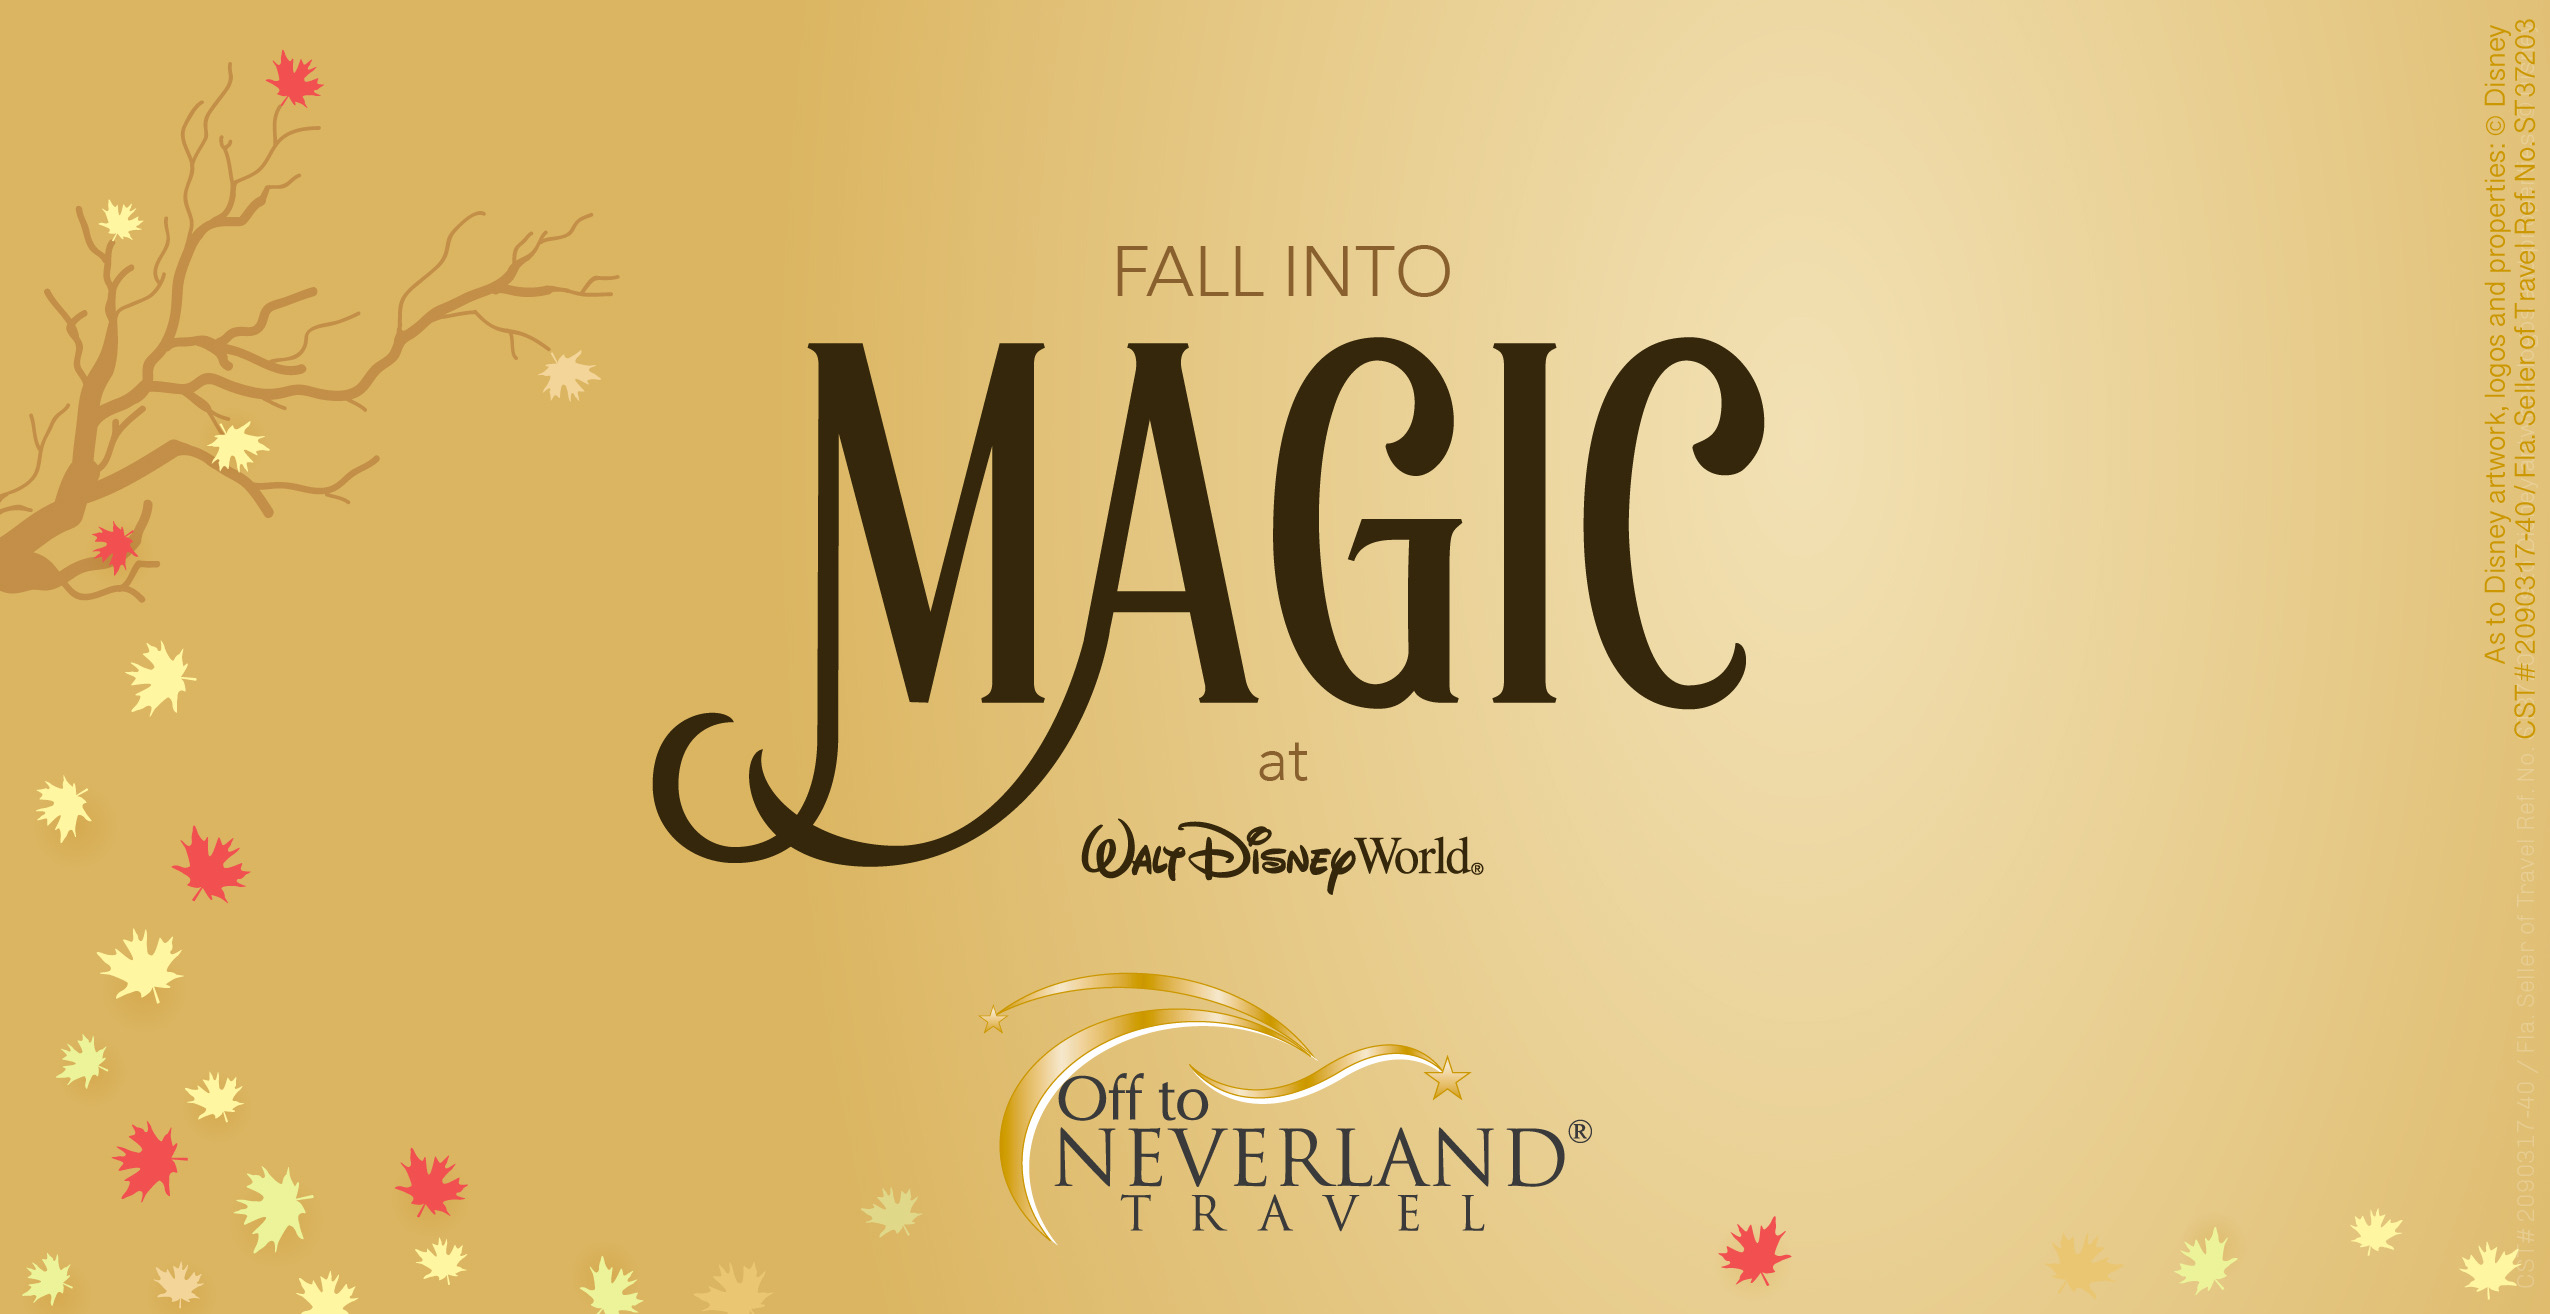 Ultimate Disney Fall into Magic Package